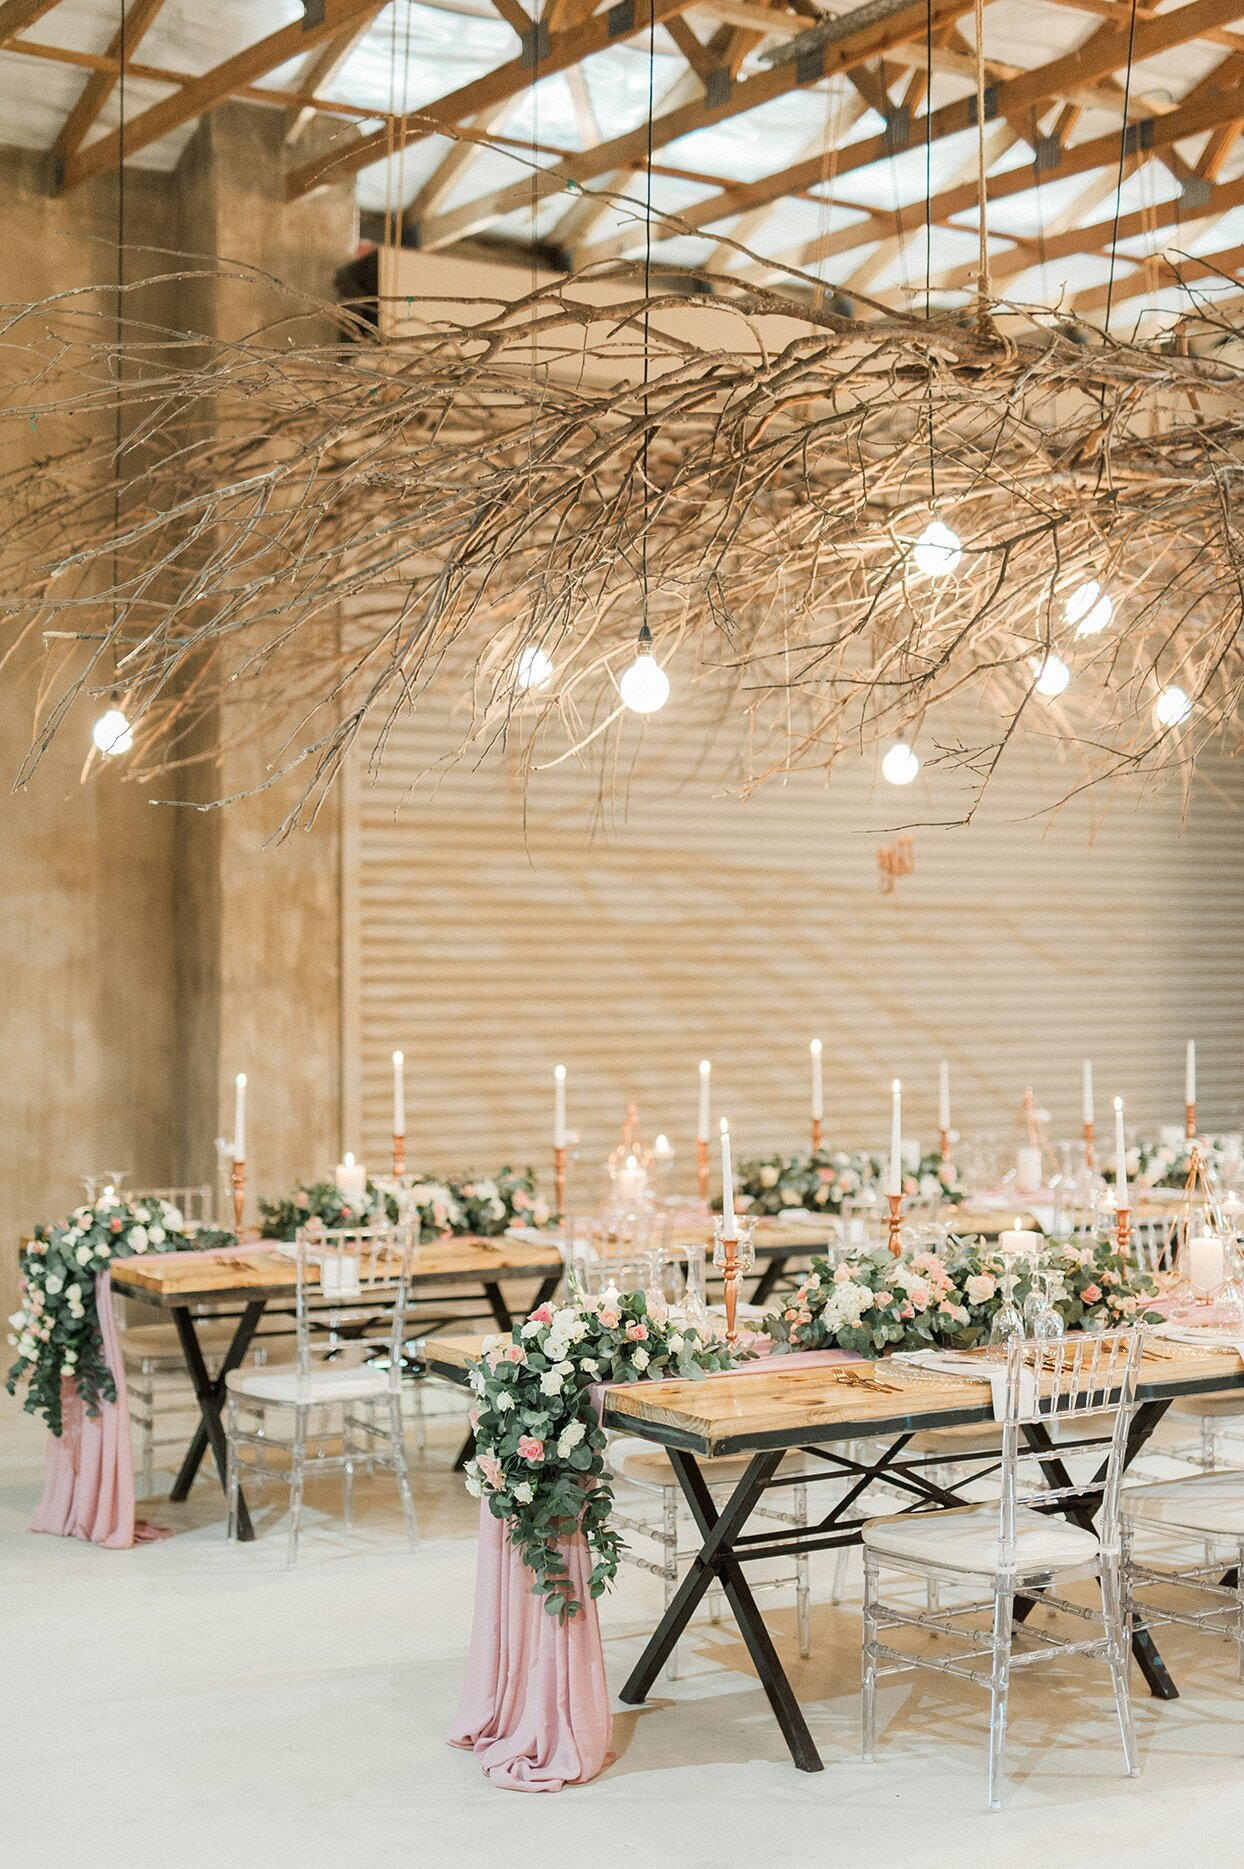 A Trend We\'re Loving: Twig and Branch Wedding Décor | Martha ...